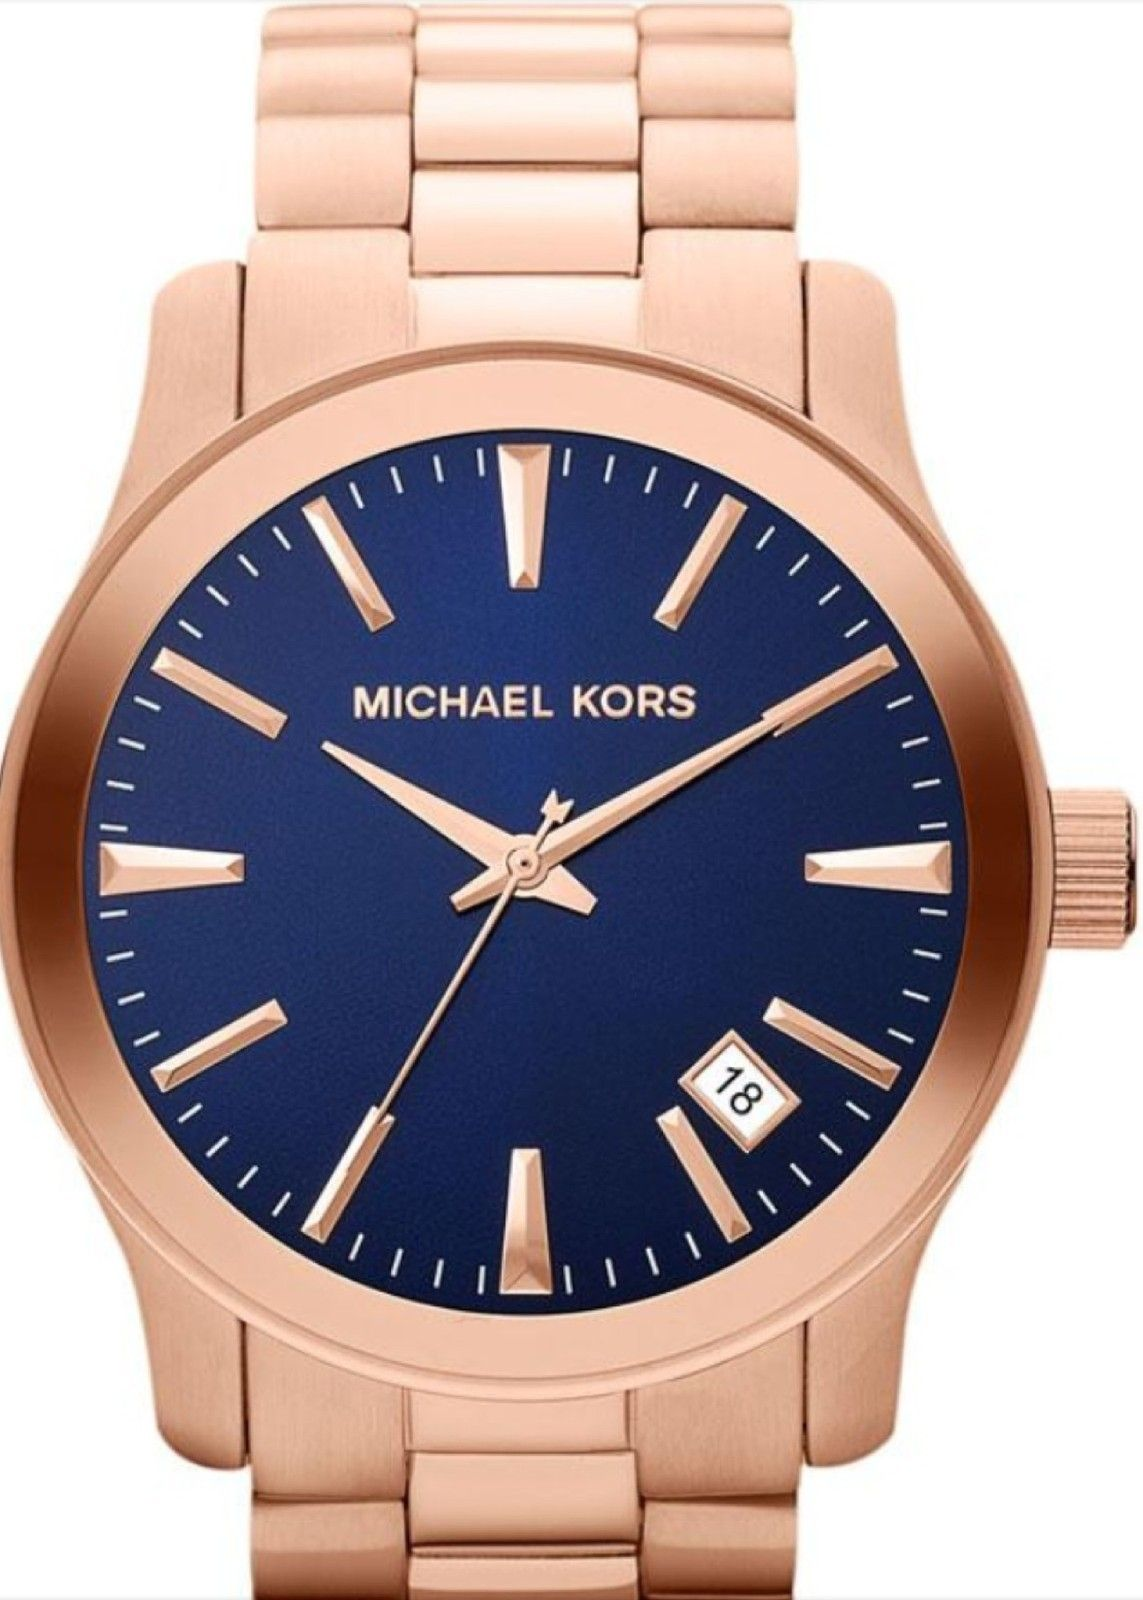 0b90a29f7256 Michael Kors Mens MK7065 Rose Gold Tone Blue Face Watch  200